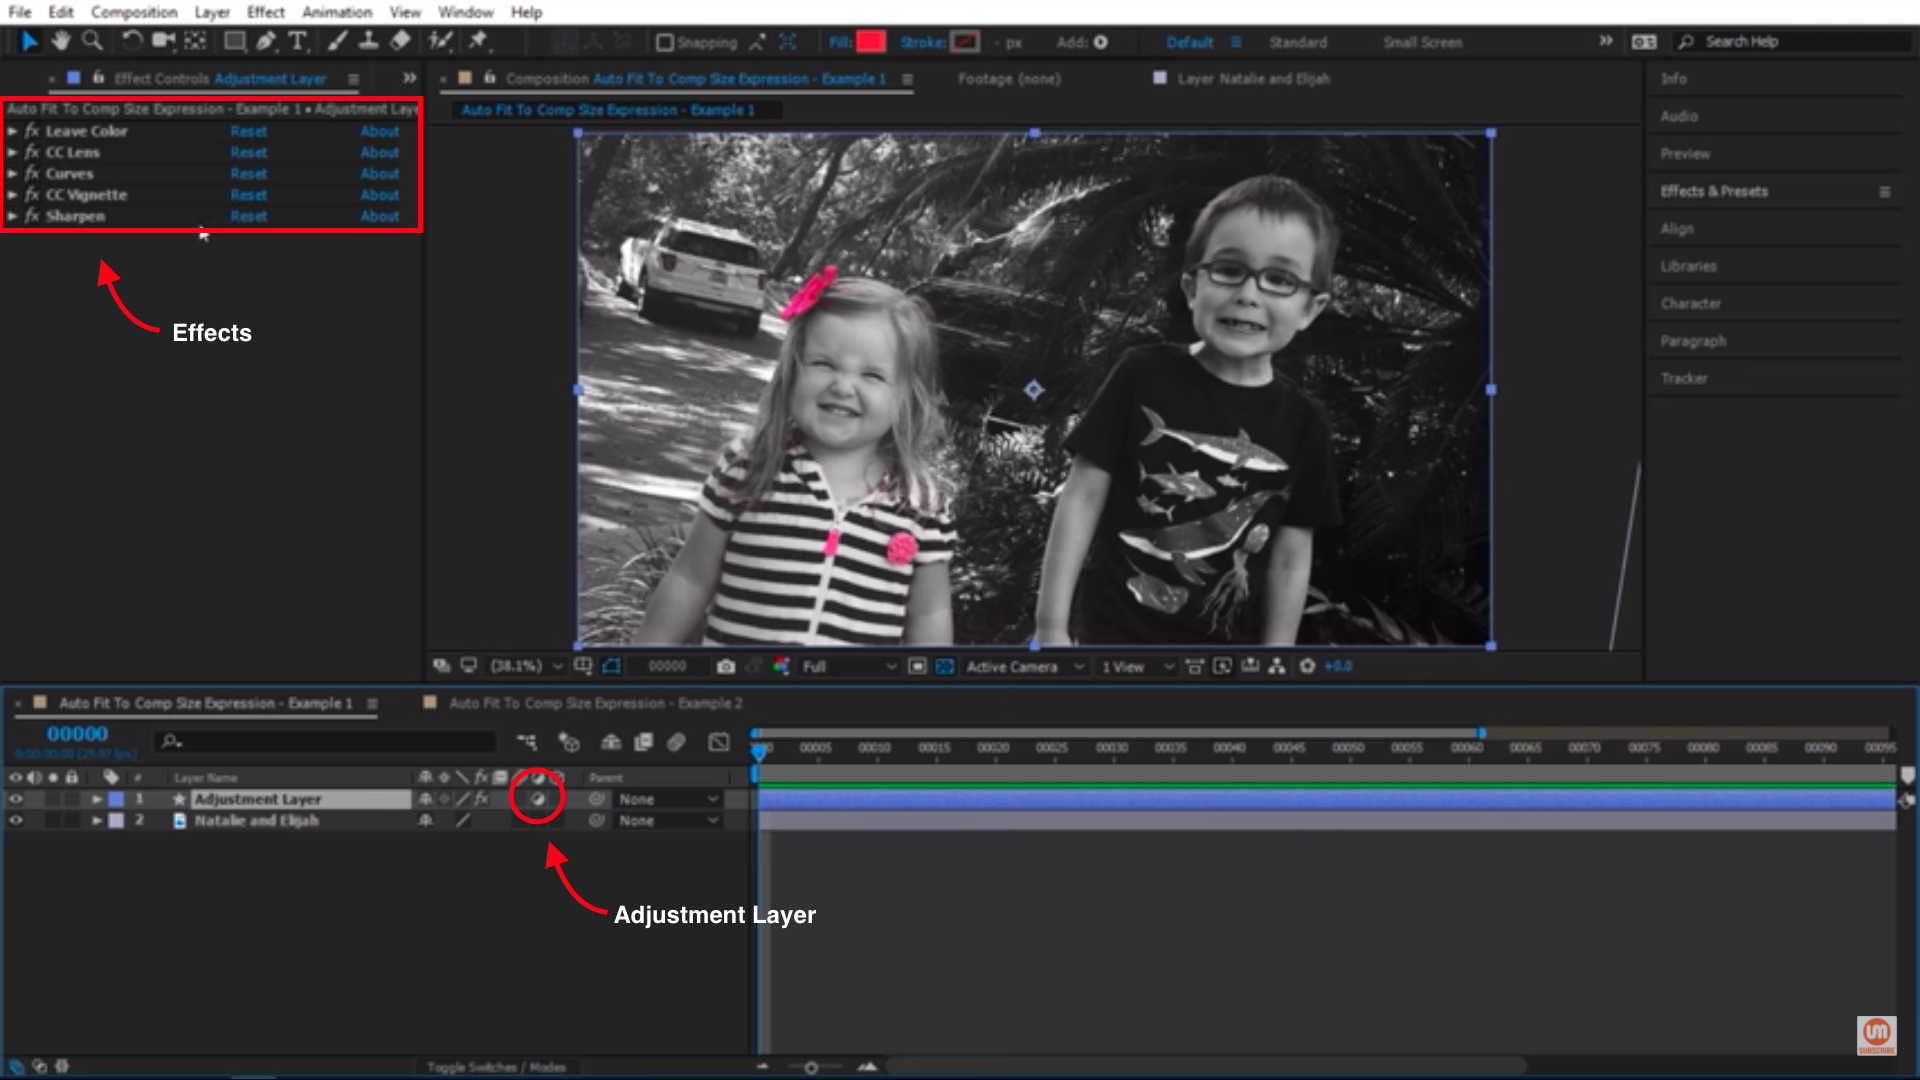 Adjustment layer with effects in After Effects